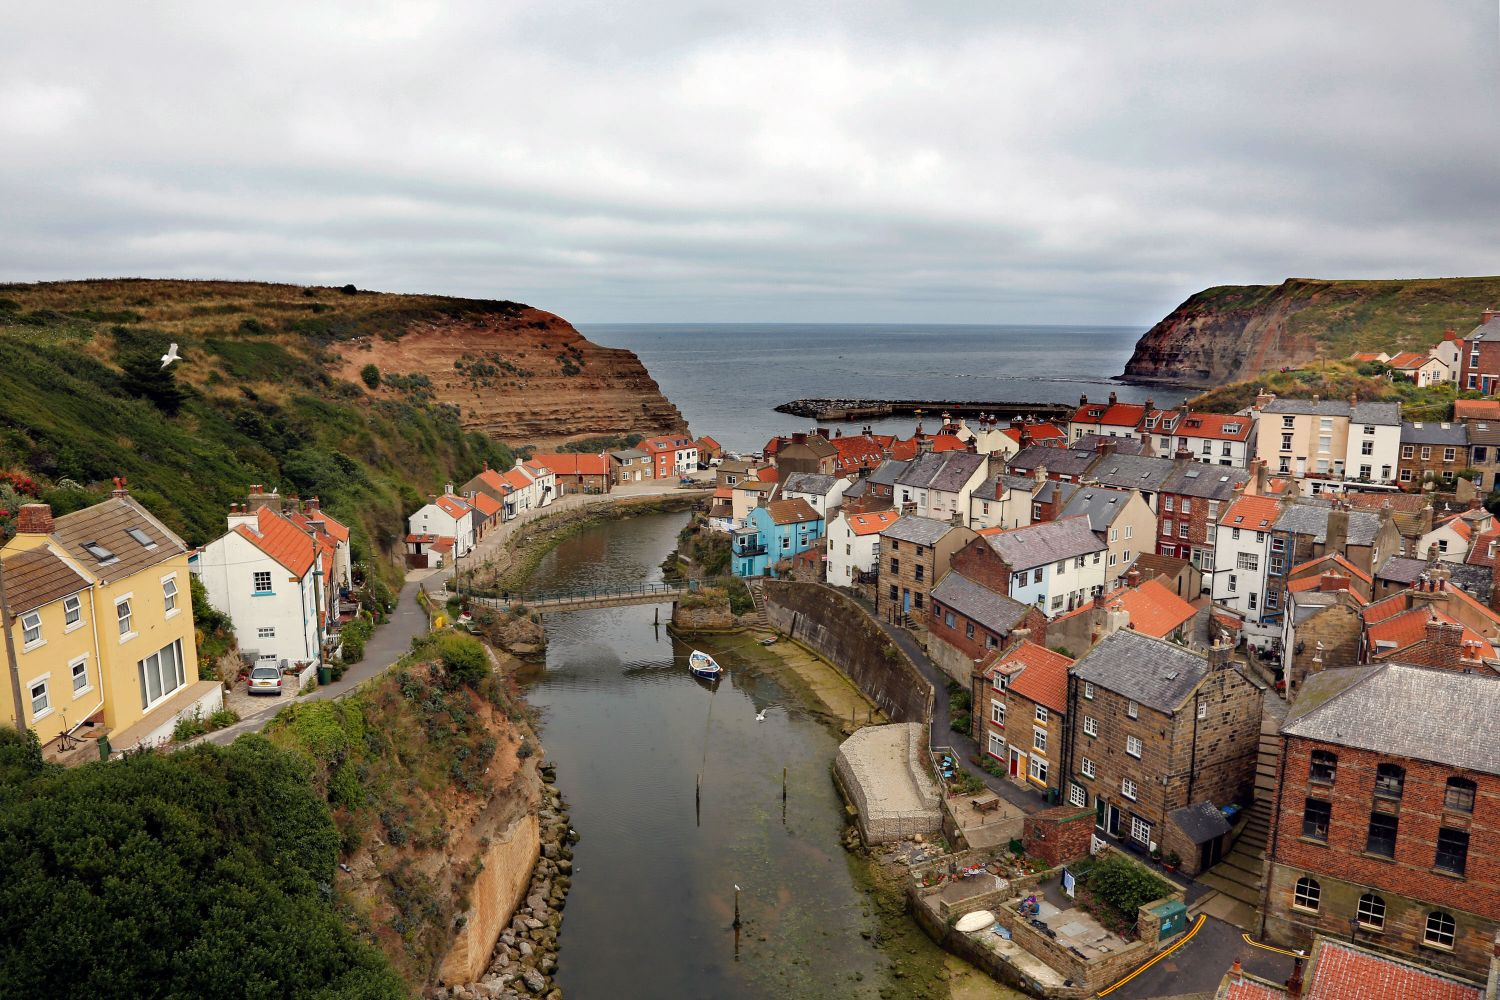 Staithes Village in North Yorkshire